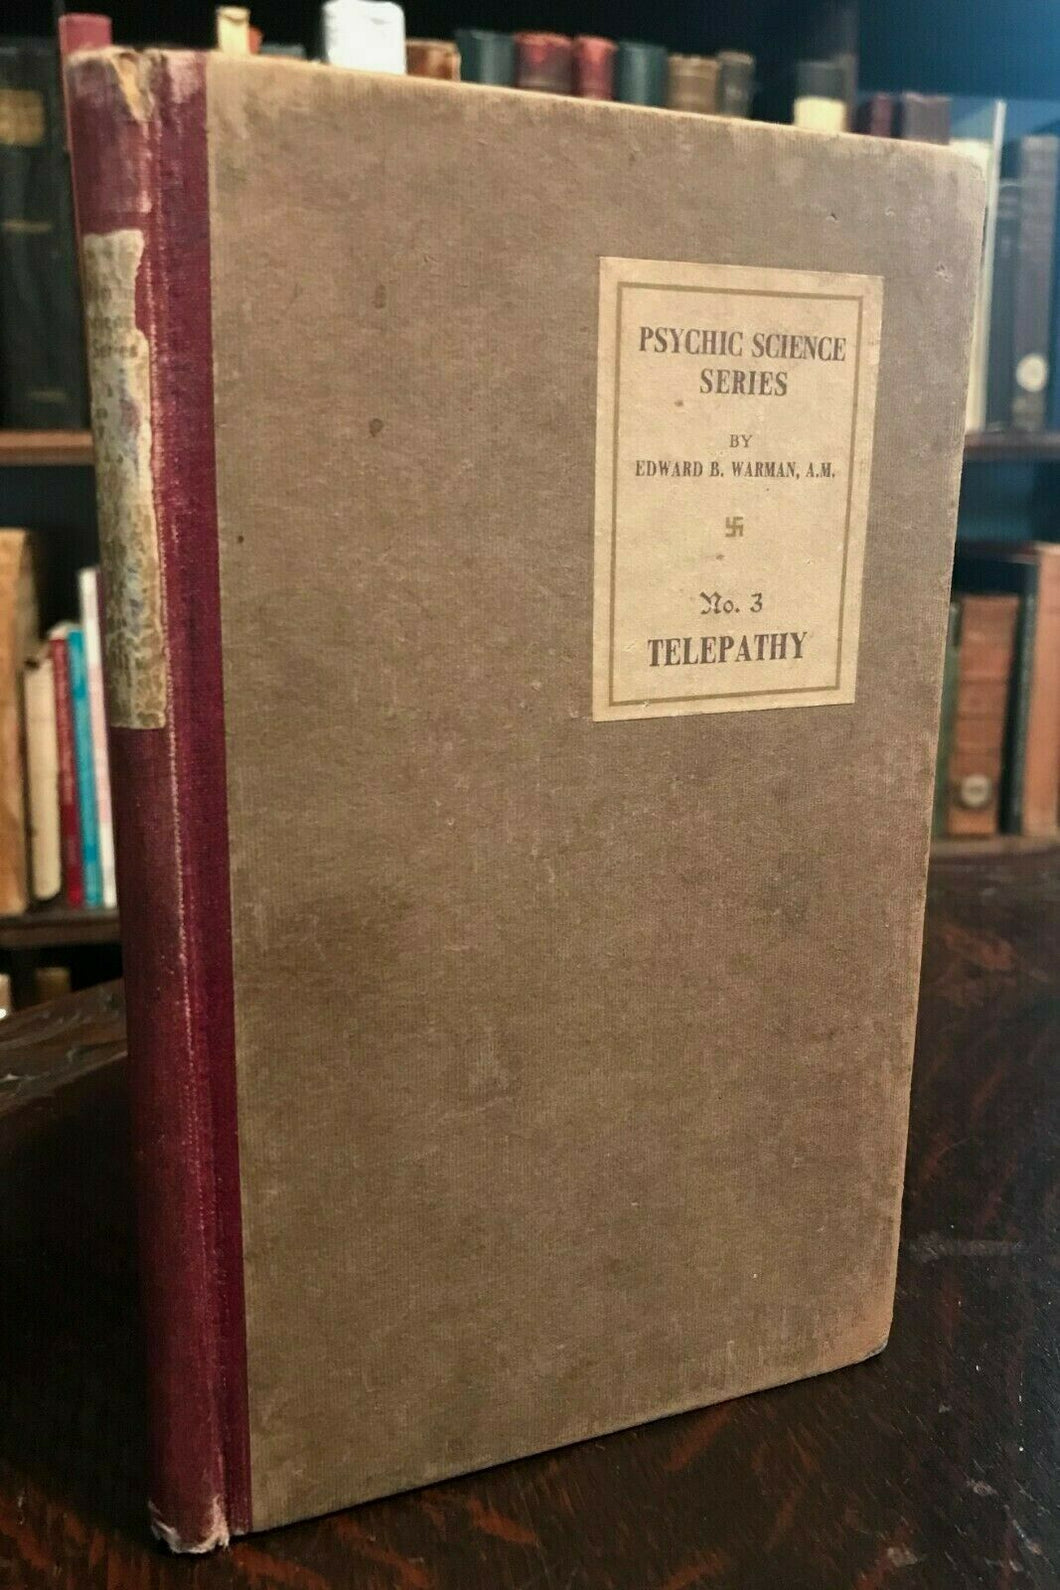 TELEPATHY - PSYCHIC SCIENCE SERIES - Warman, 1910 - MIND READING, DIVINATION